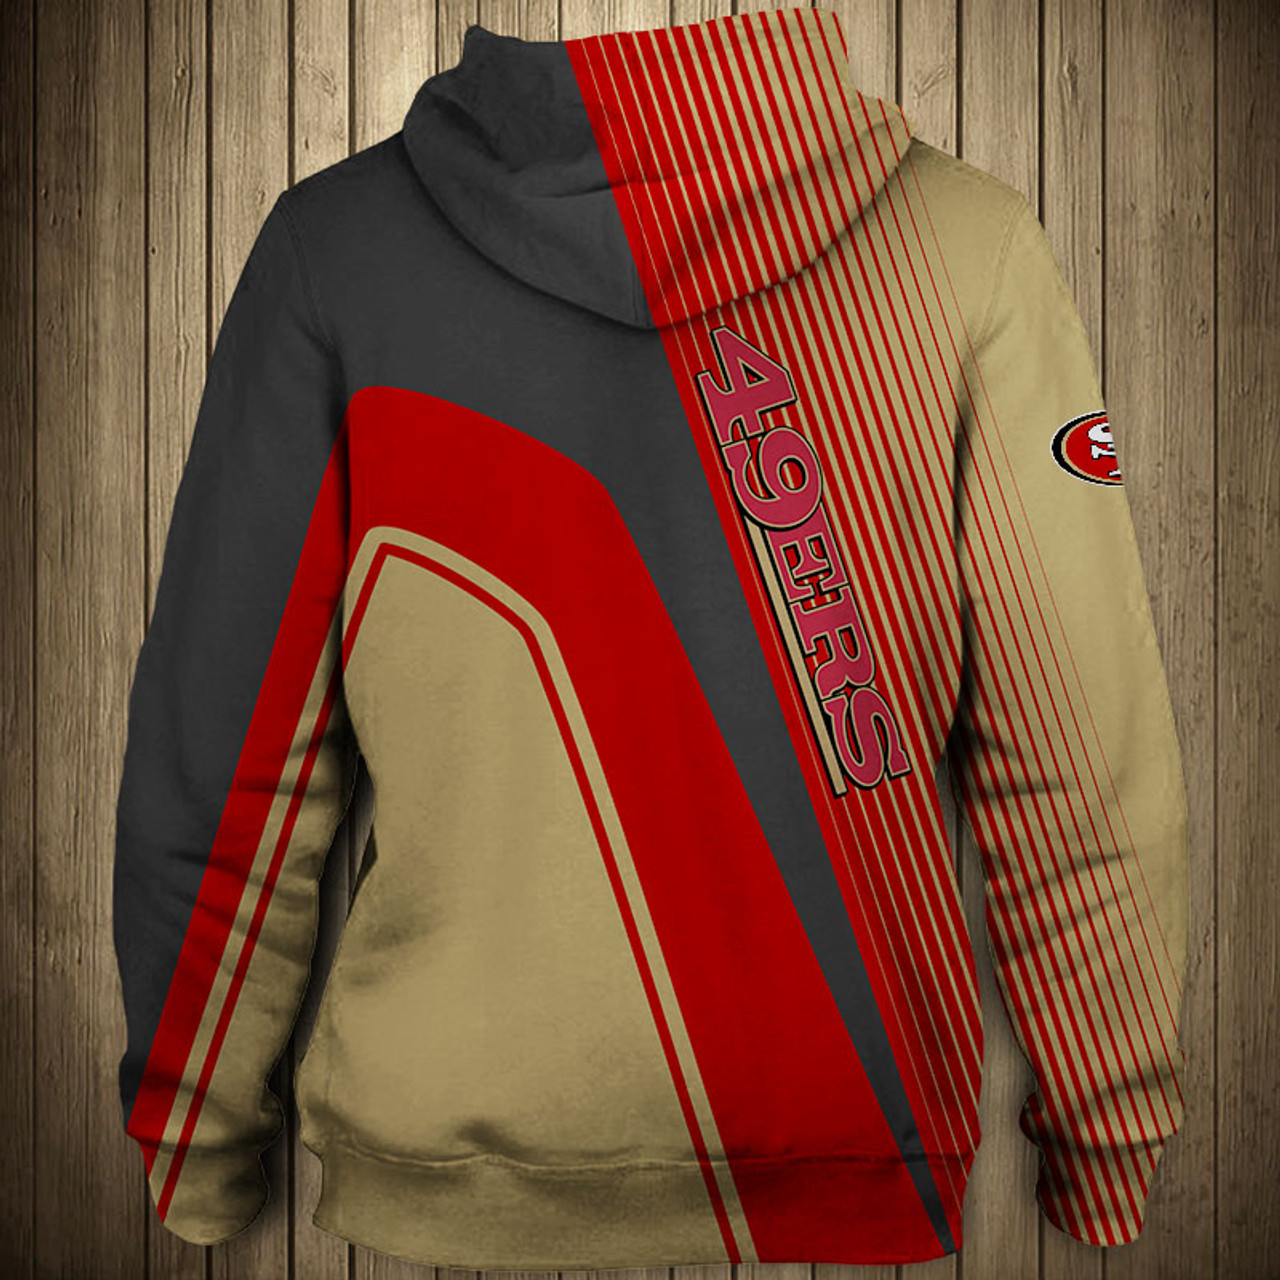 **(OFFICIAL-N.F.L.SAN-FRANCISCO-49ERS-PULLOVER-HOODIES/3D-CUSTOM-49ERS-LOGOS & OFFICIAL-49ERS-TEAM-COLORS/NICE-3D-DETAILED-GRAPHIC-PRINTED-DOUBLE-SIDED/ALL-OVER-ENTIRE-HOODIE-PRINTED-DESIGN/TRENDY-WARM-PREMIUM-N.F.L.49ERS-PULLOVER-HOODIES)*